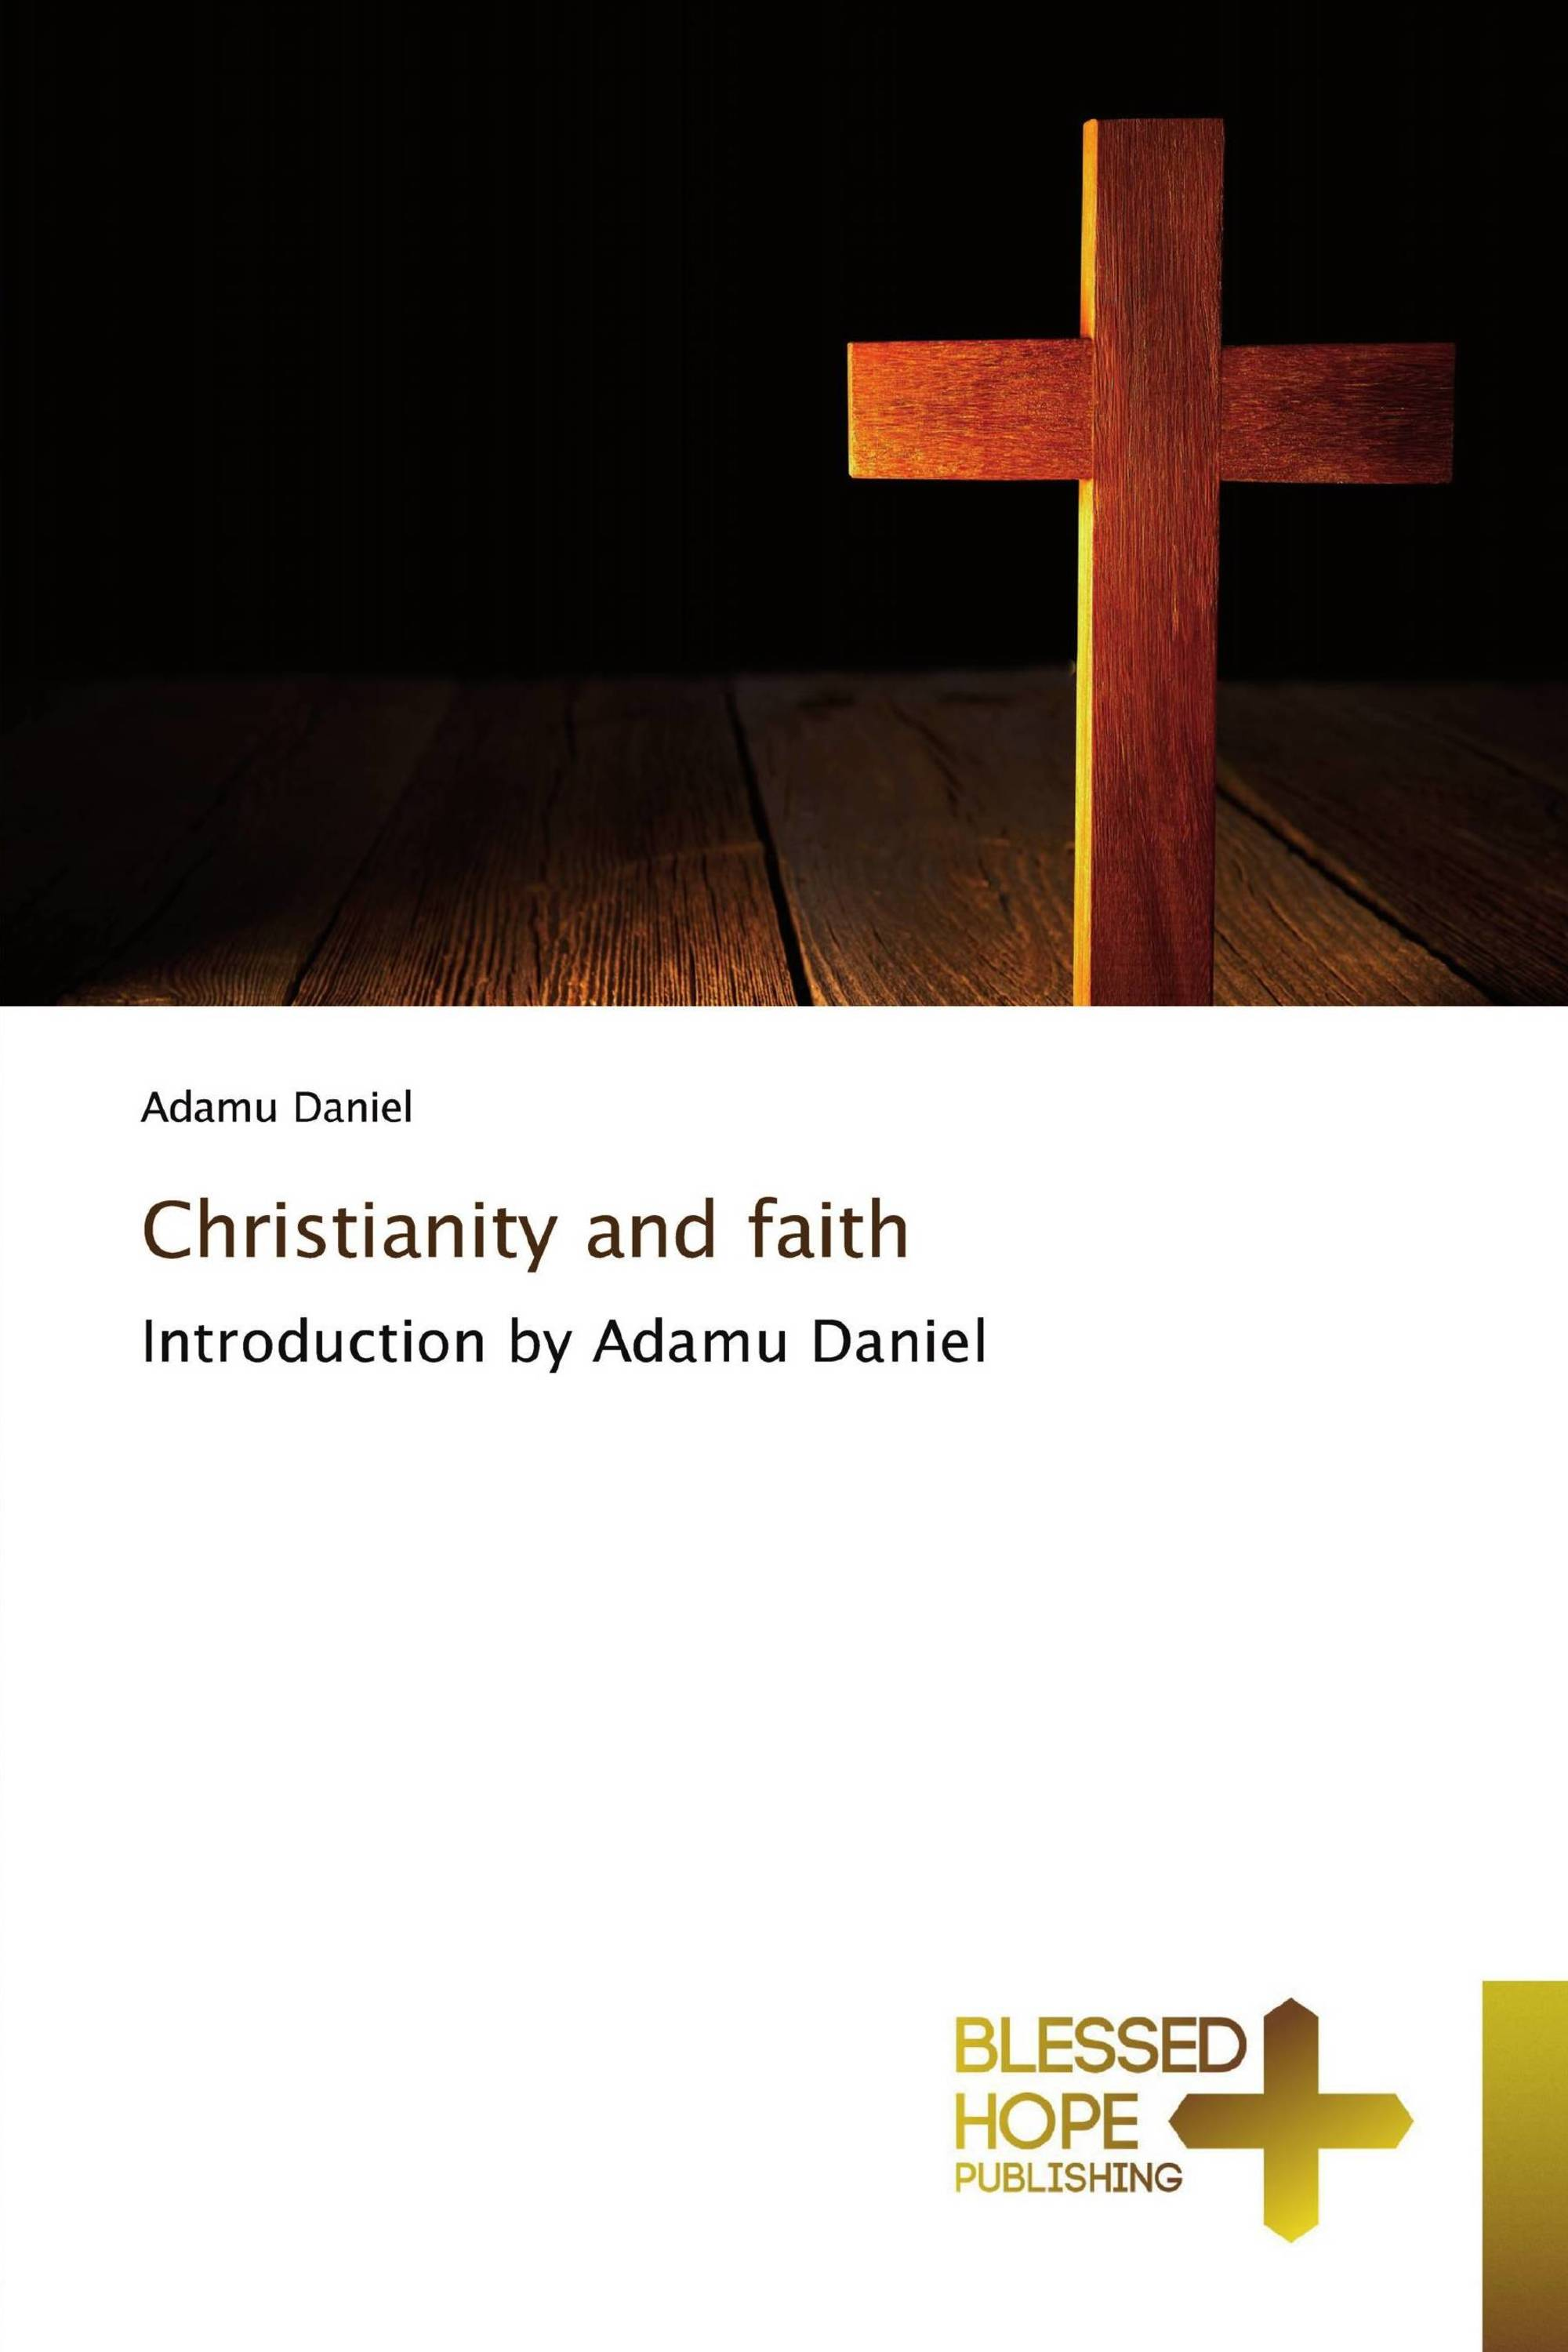 Christianity and faith